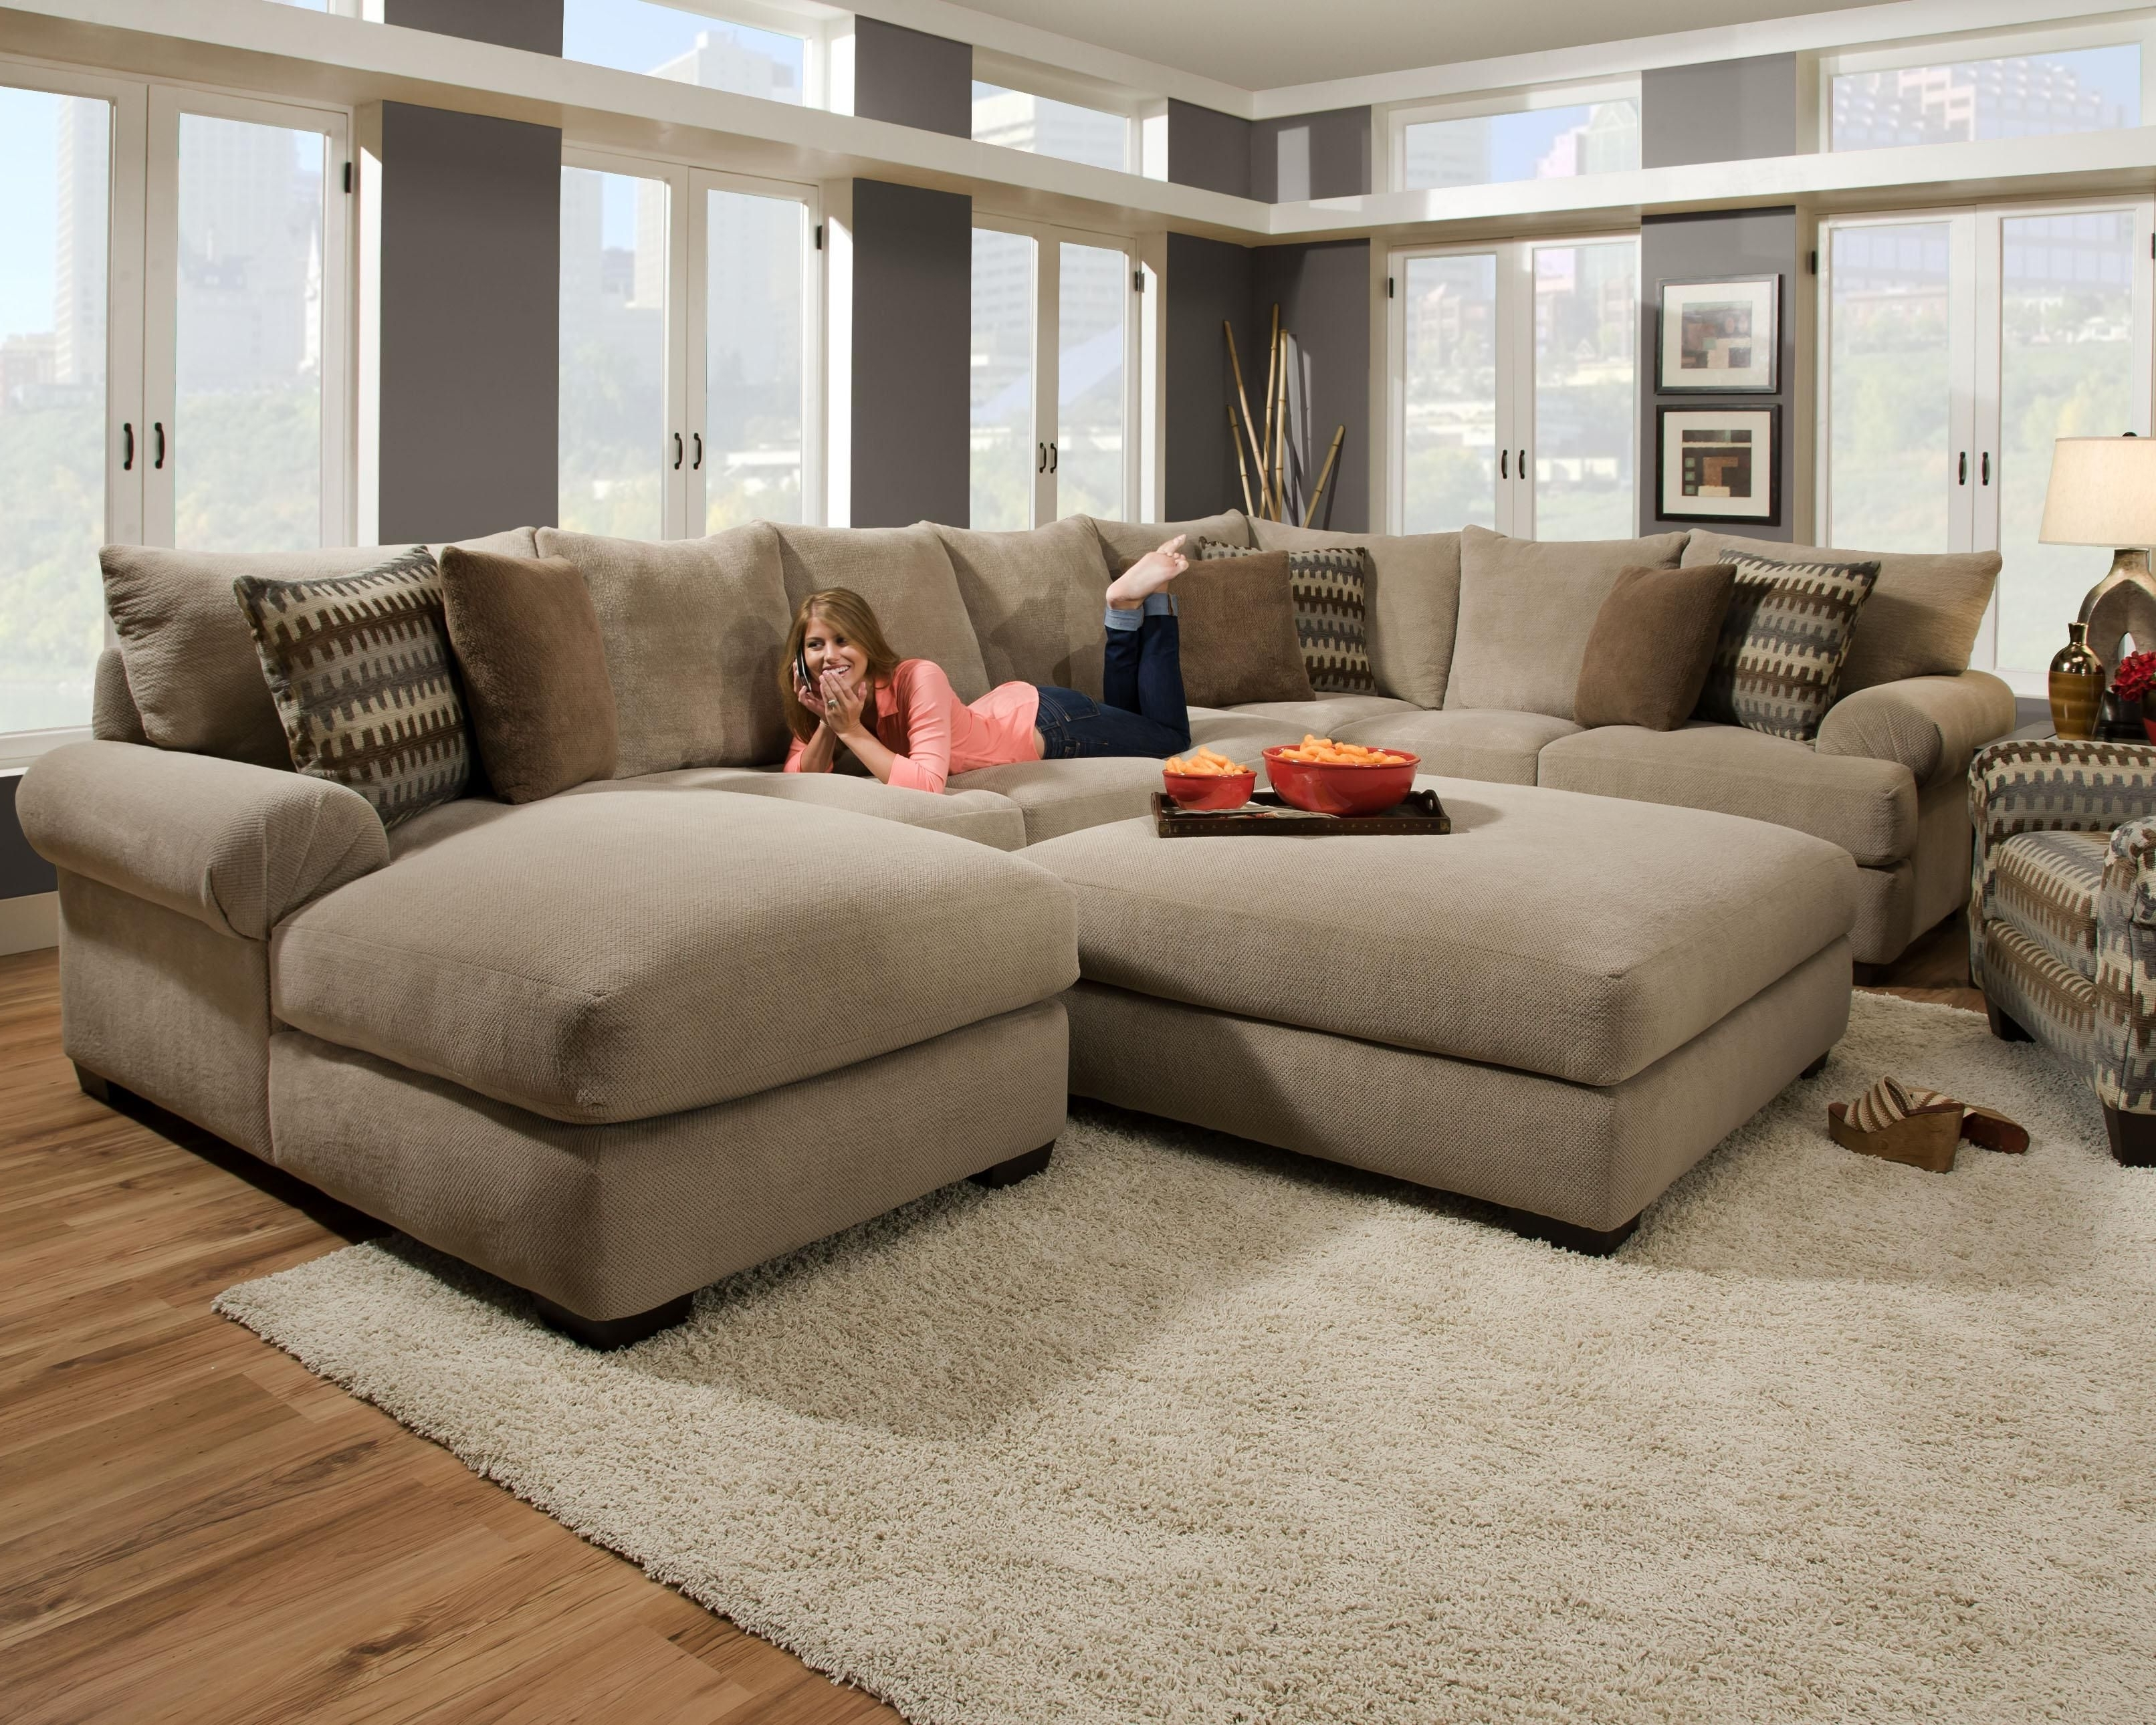 Couches With Large Ottoman Within 2018 Furniture Design Idea For Living Room And Oversized U Shaped (View 9 of 20)